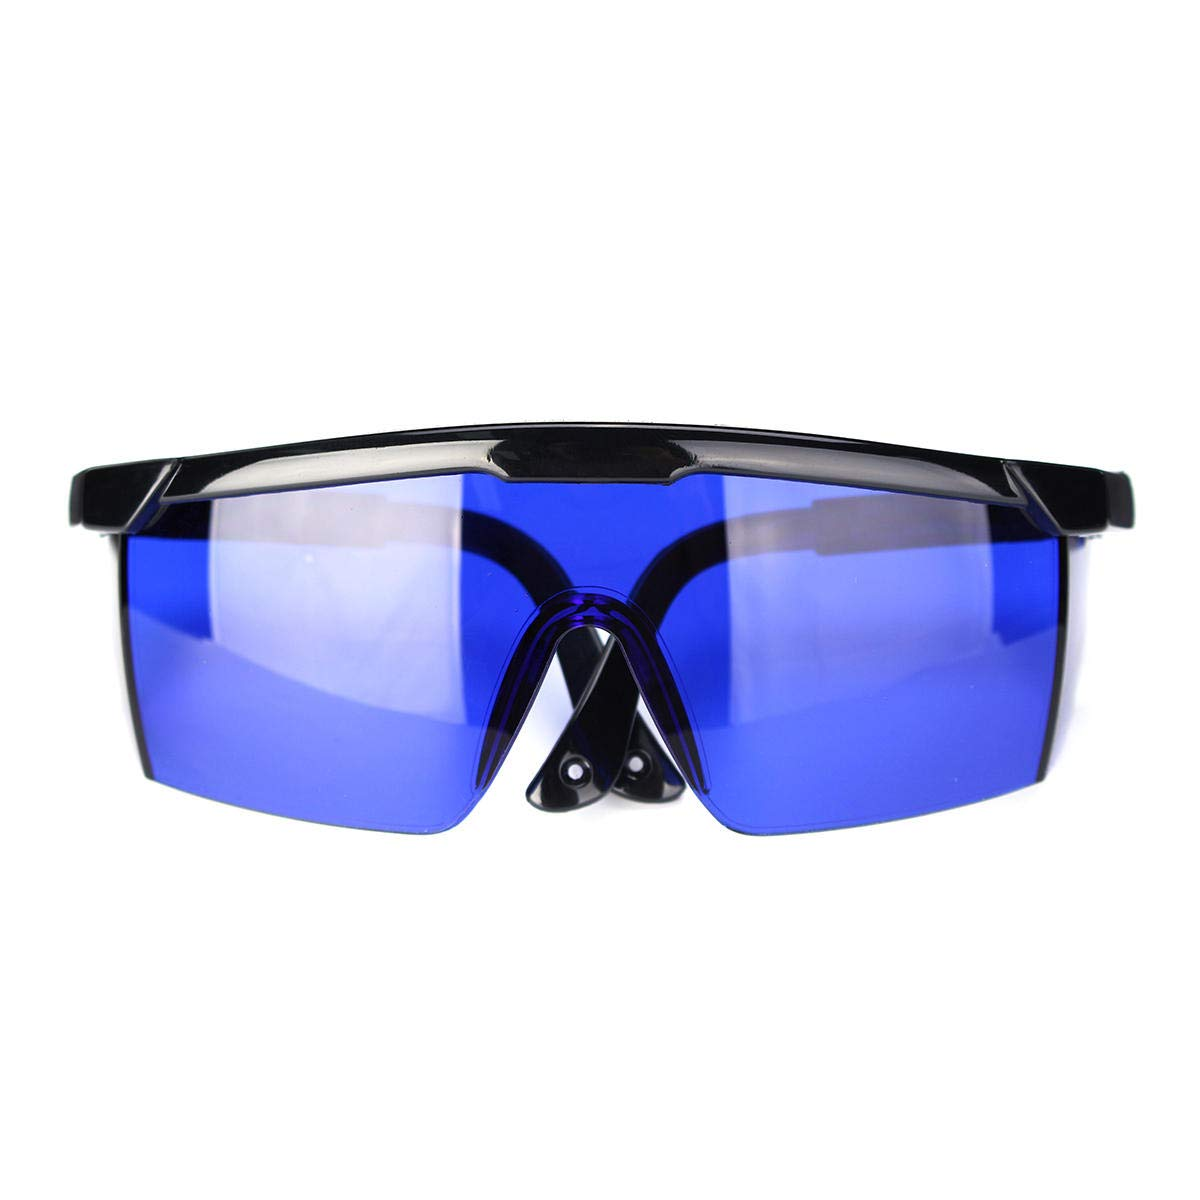 Golf Finder Locating Glasses Protection Goggles Blue Lens Less Straining Sunglasses with Box - Safety & Protective Gear Goggles - 1 x Glasses, 1 x Glasses box, 1 x Cleaning cloth